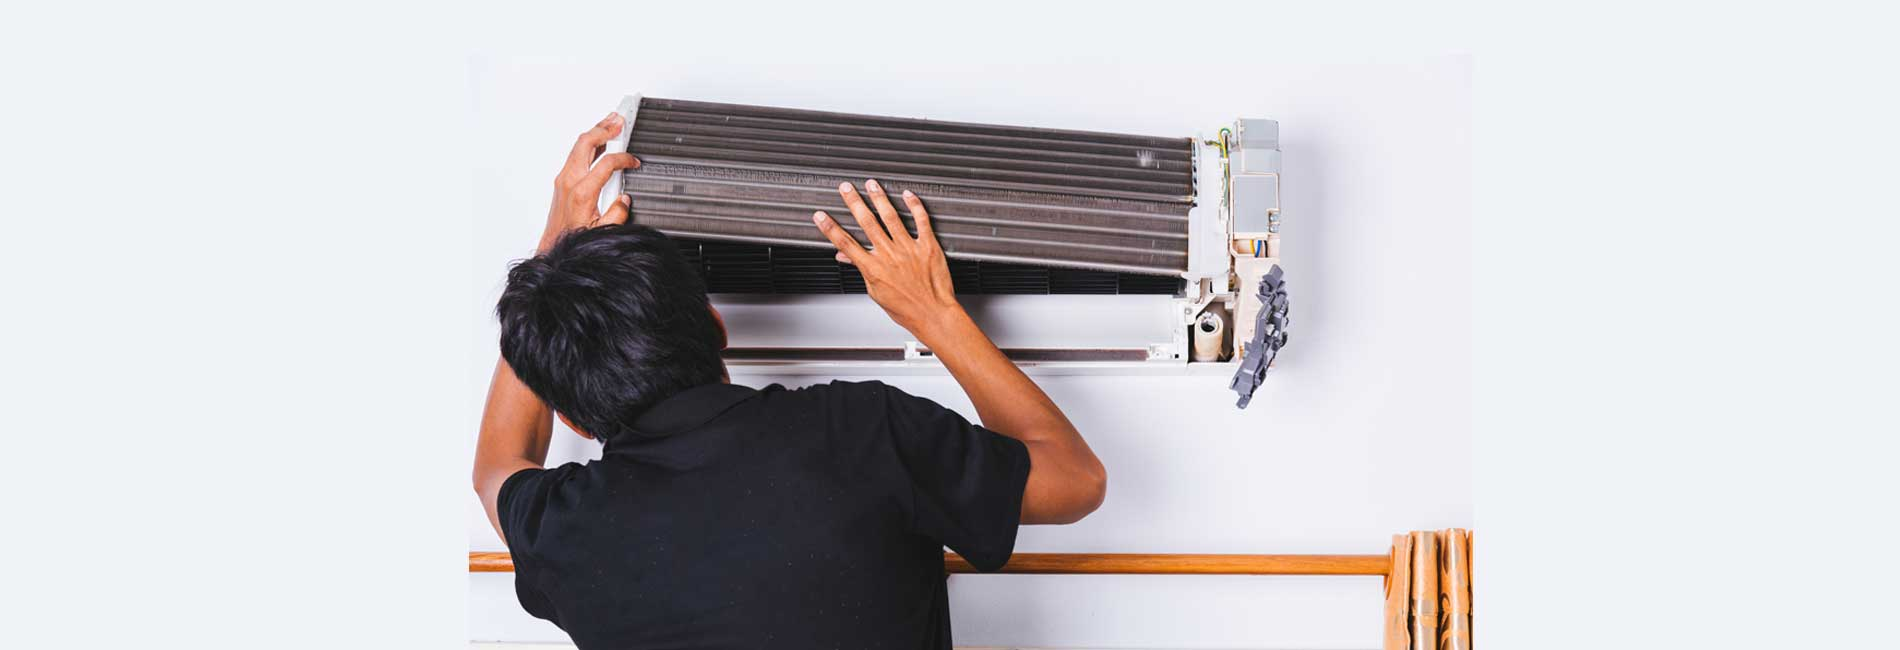 Air Condition Service in Oragadam